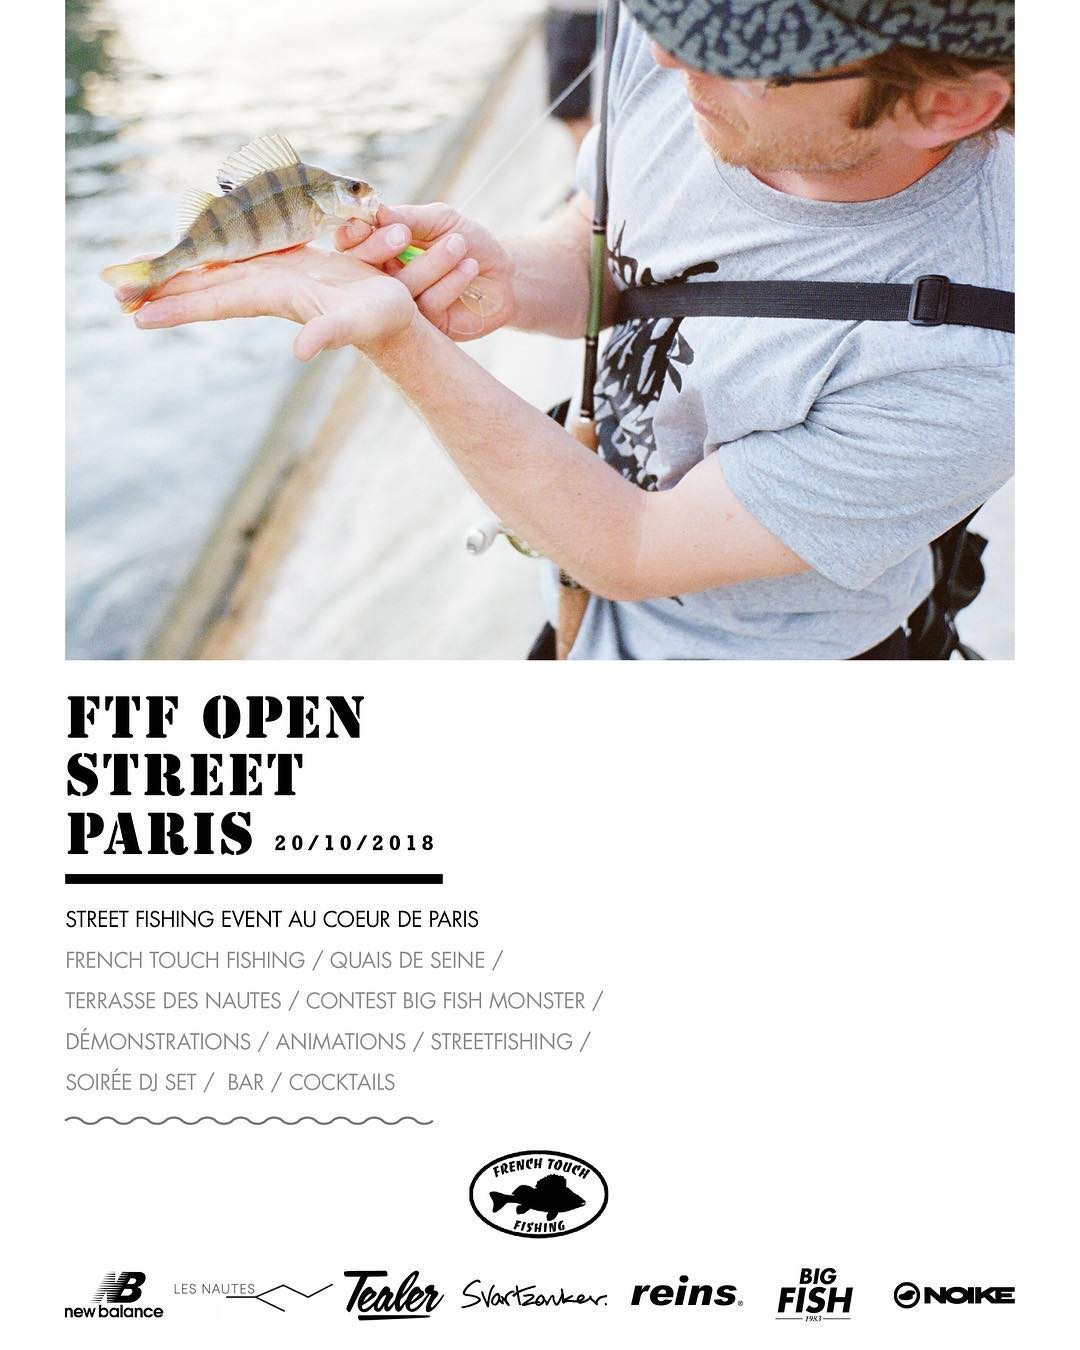 FTF Open Street Paris 2018